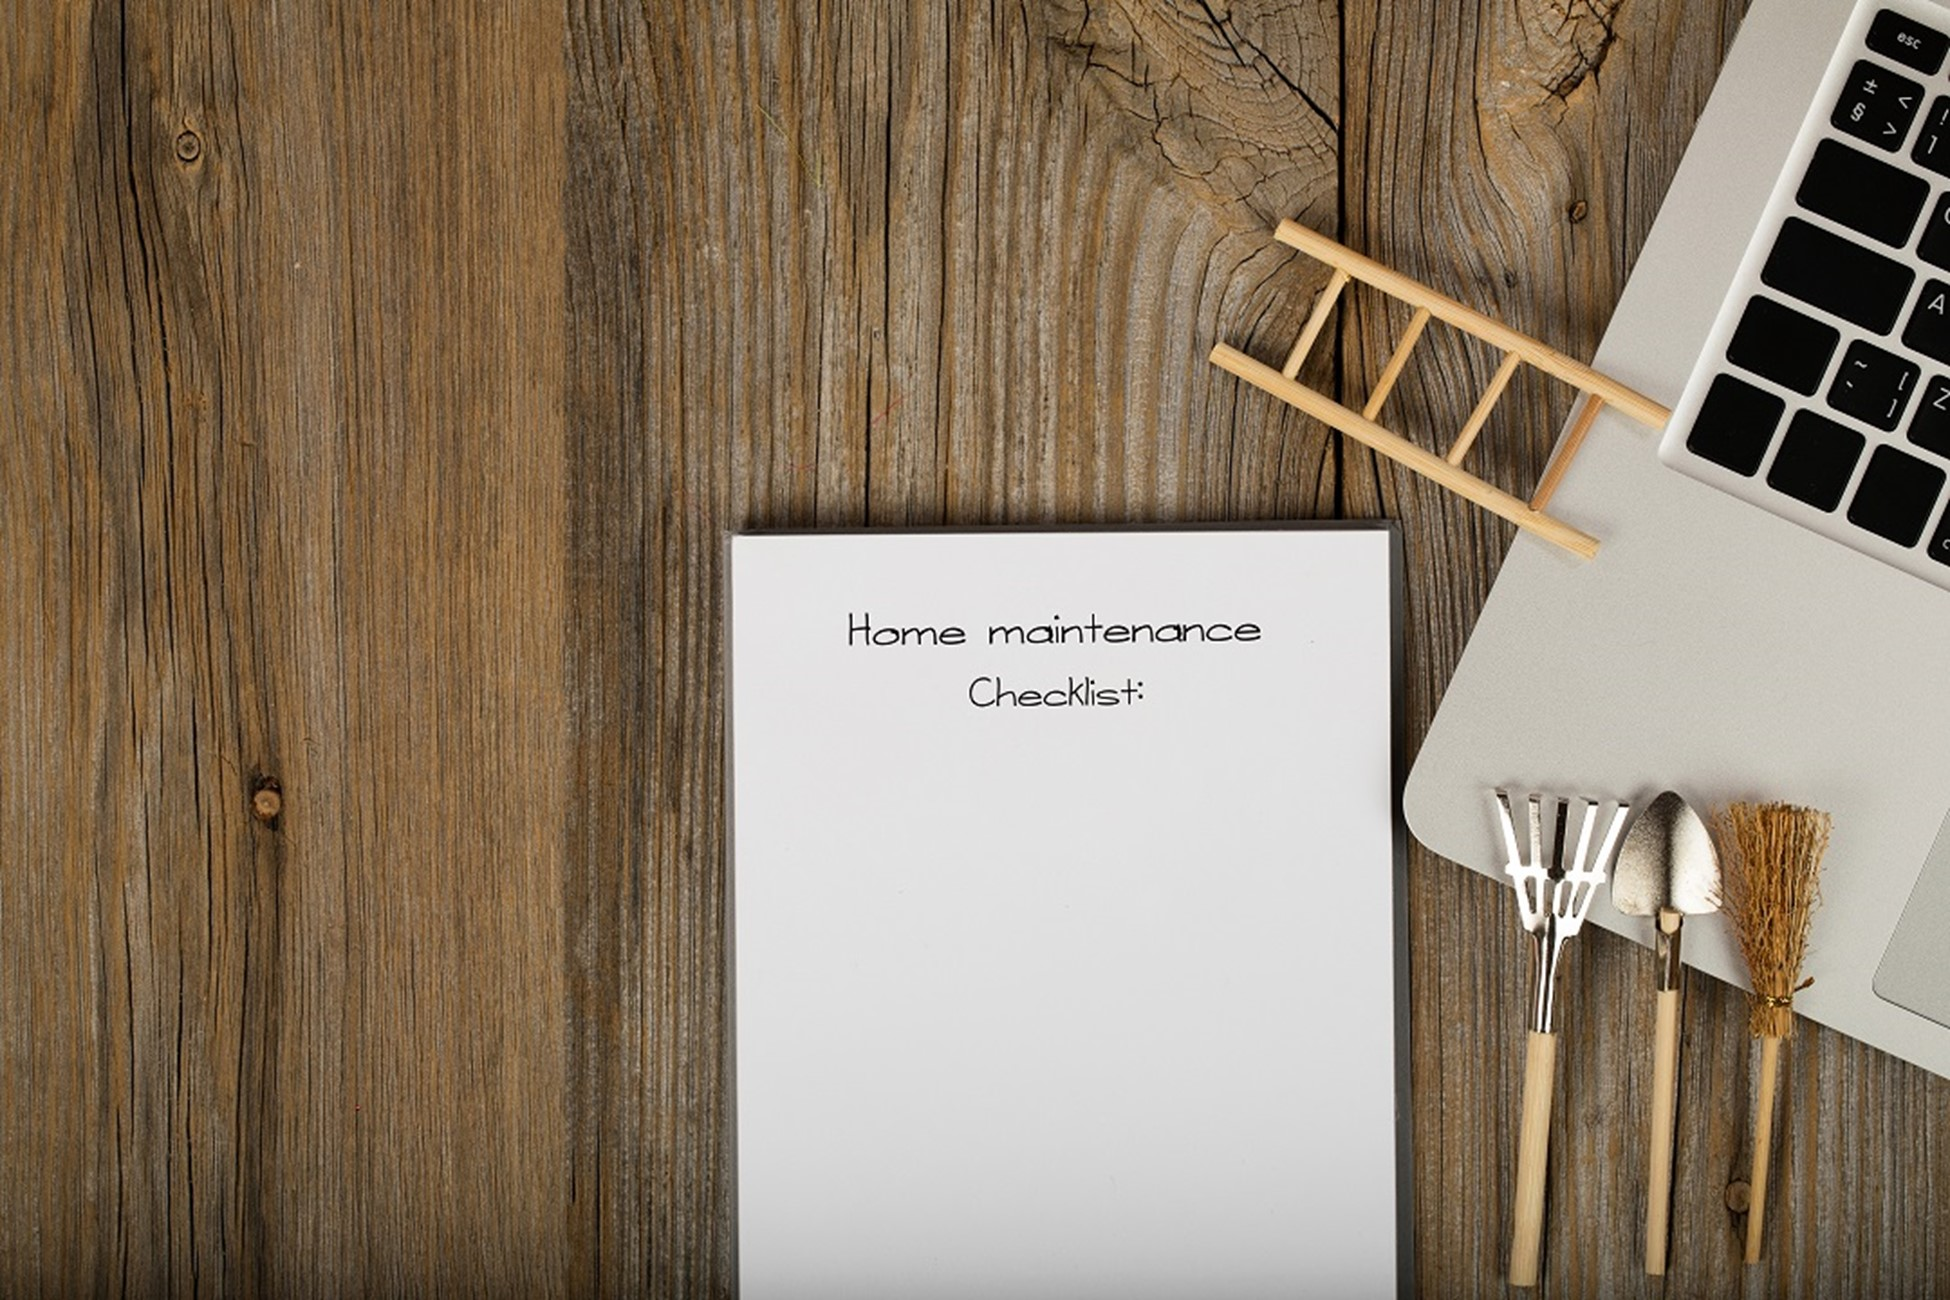 Home Maintenance Checklist for Property Owners